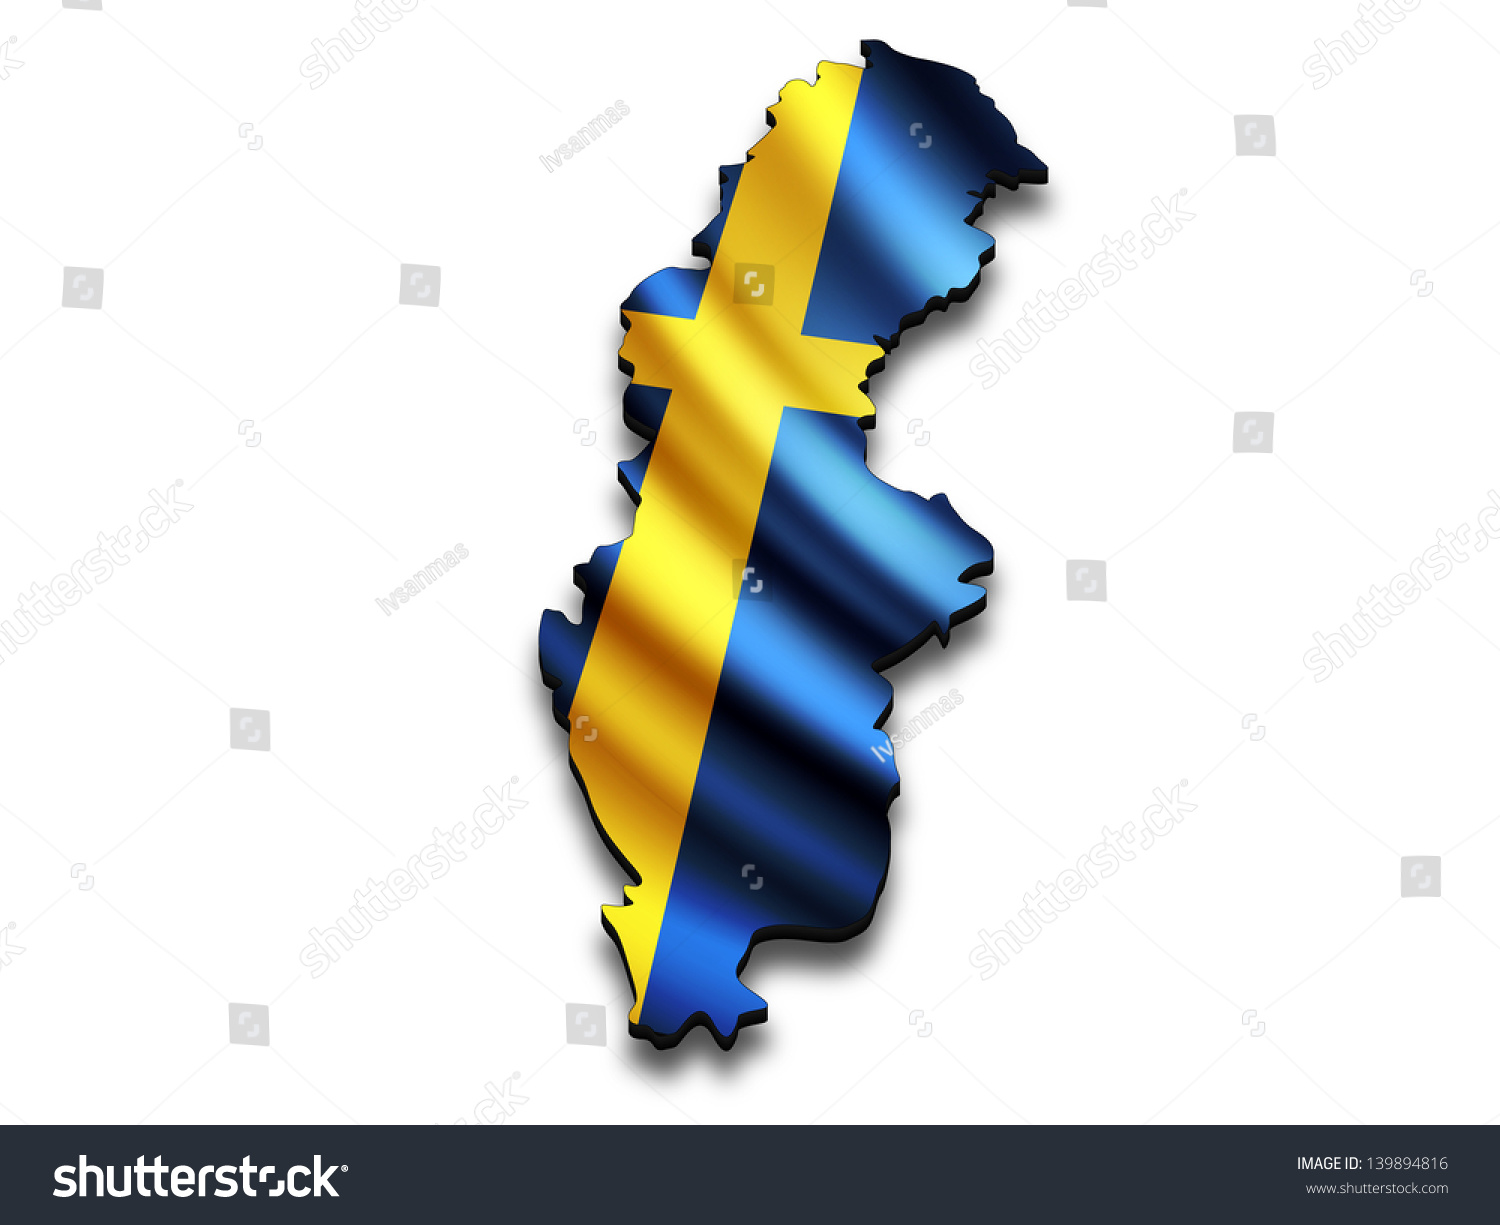 map out multiple addresses with Stock Photo Flag Map Of Sweden In Perspective Waving Swedish Flag Clipped In Country Shape on Stock Photo Trinidad And Tobago Shaded Relief Map Colored According To Vegetation With Major Urban Areas moreover Stock Vector Countries And Capitals Of The Europe Vector Illustration furthermore Stock Photo Chalermprakiet Temple L ang Thailand together with Stock Photo Anatomical Body Human Skeleton Anatomy Of Human Bony System Body Surface Contour And Palpable additionally Stock Vector Arabian Peninsula.